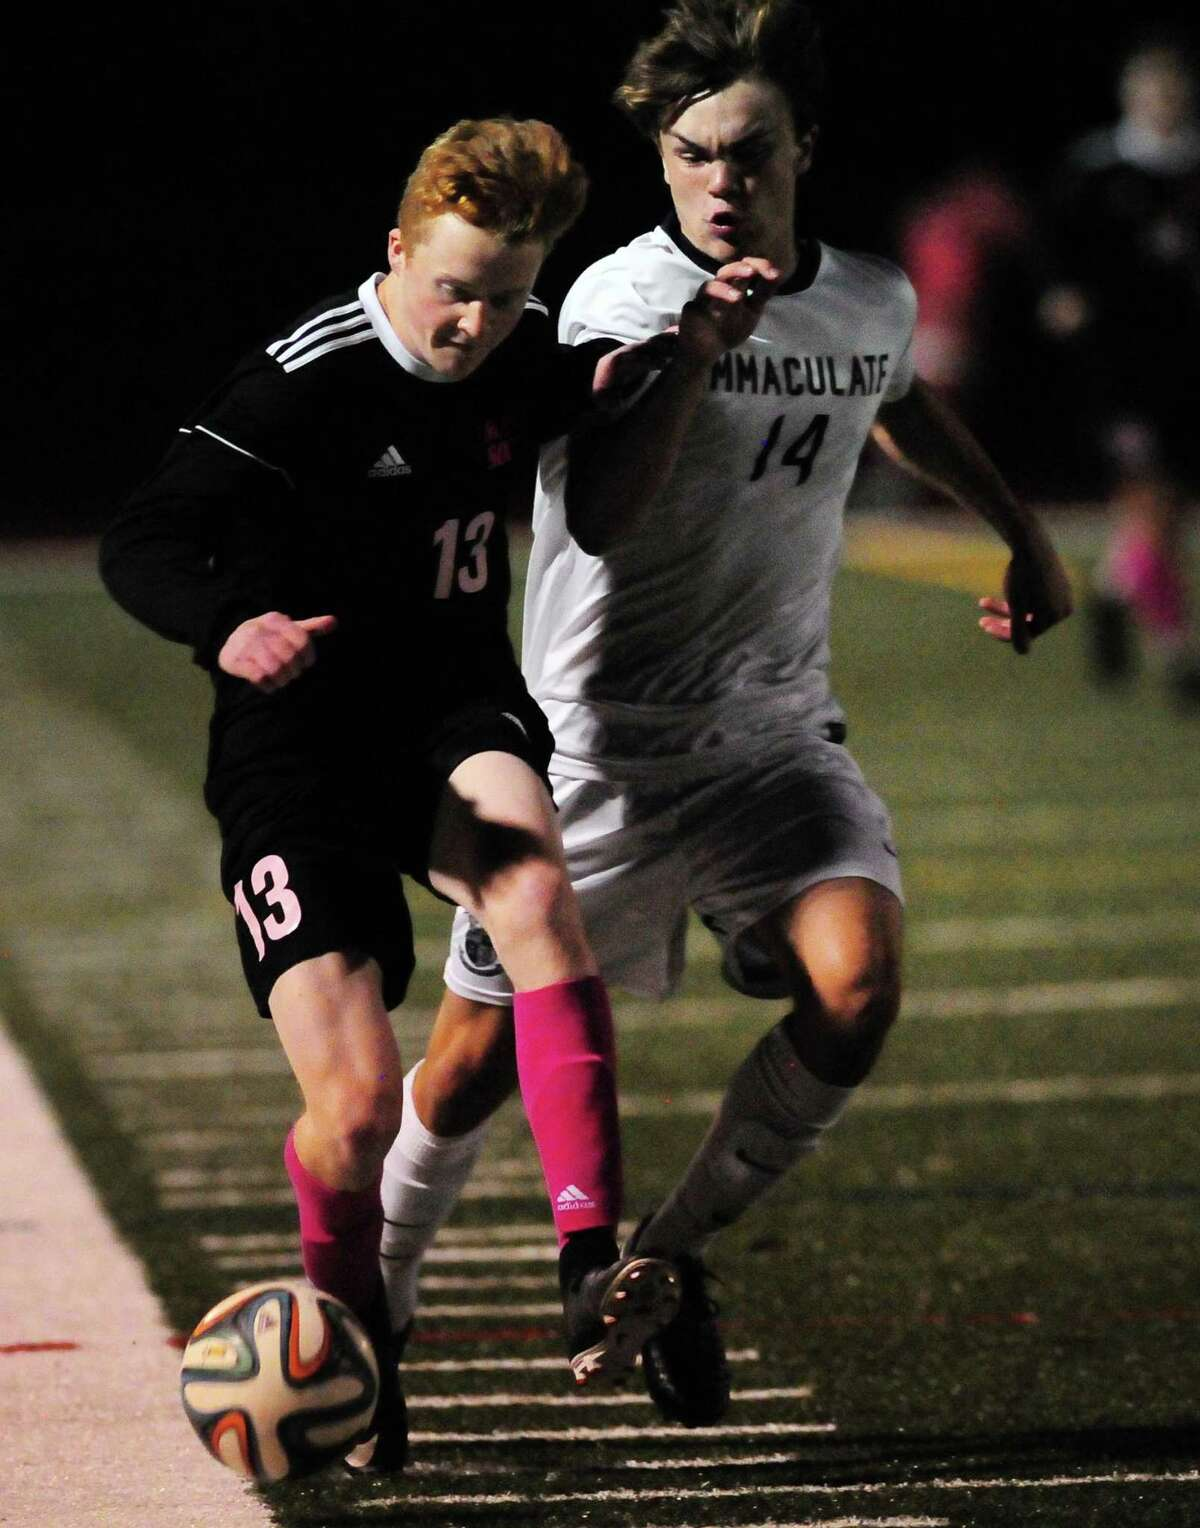 Masuk's Matthew Machan, left, heads off Immaculate's Quinn Guth during boys soccer action in Monroe, Conn., on Tuesday Oct. 3, 2017.